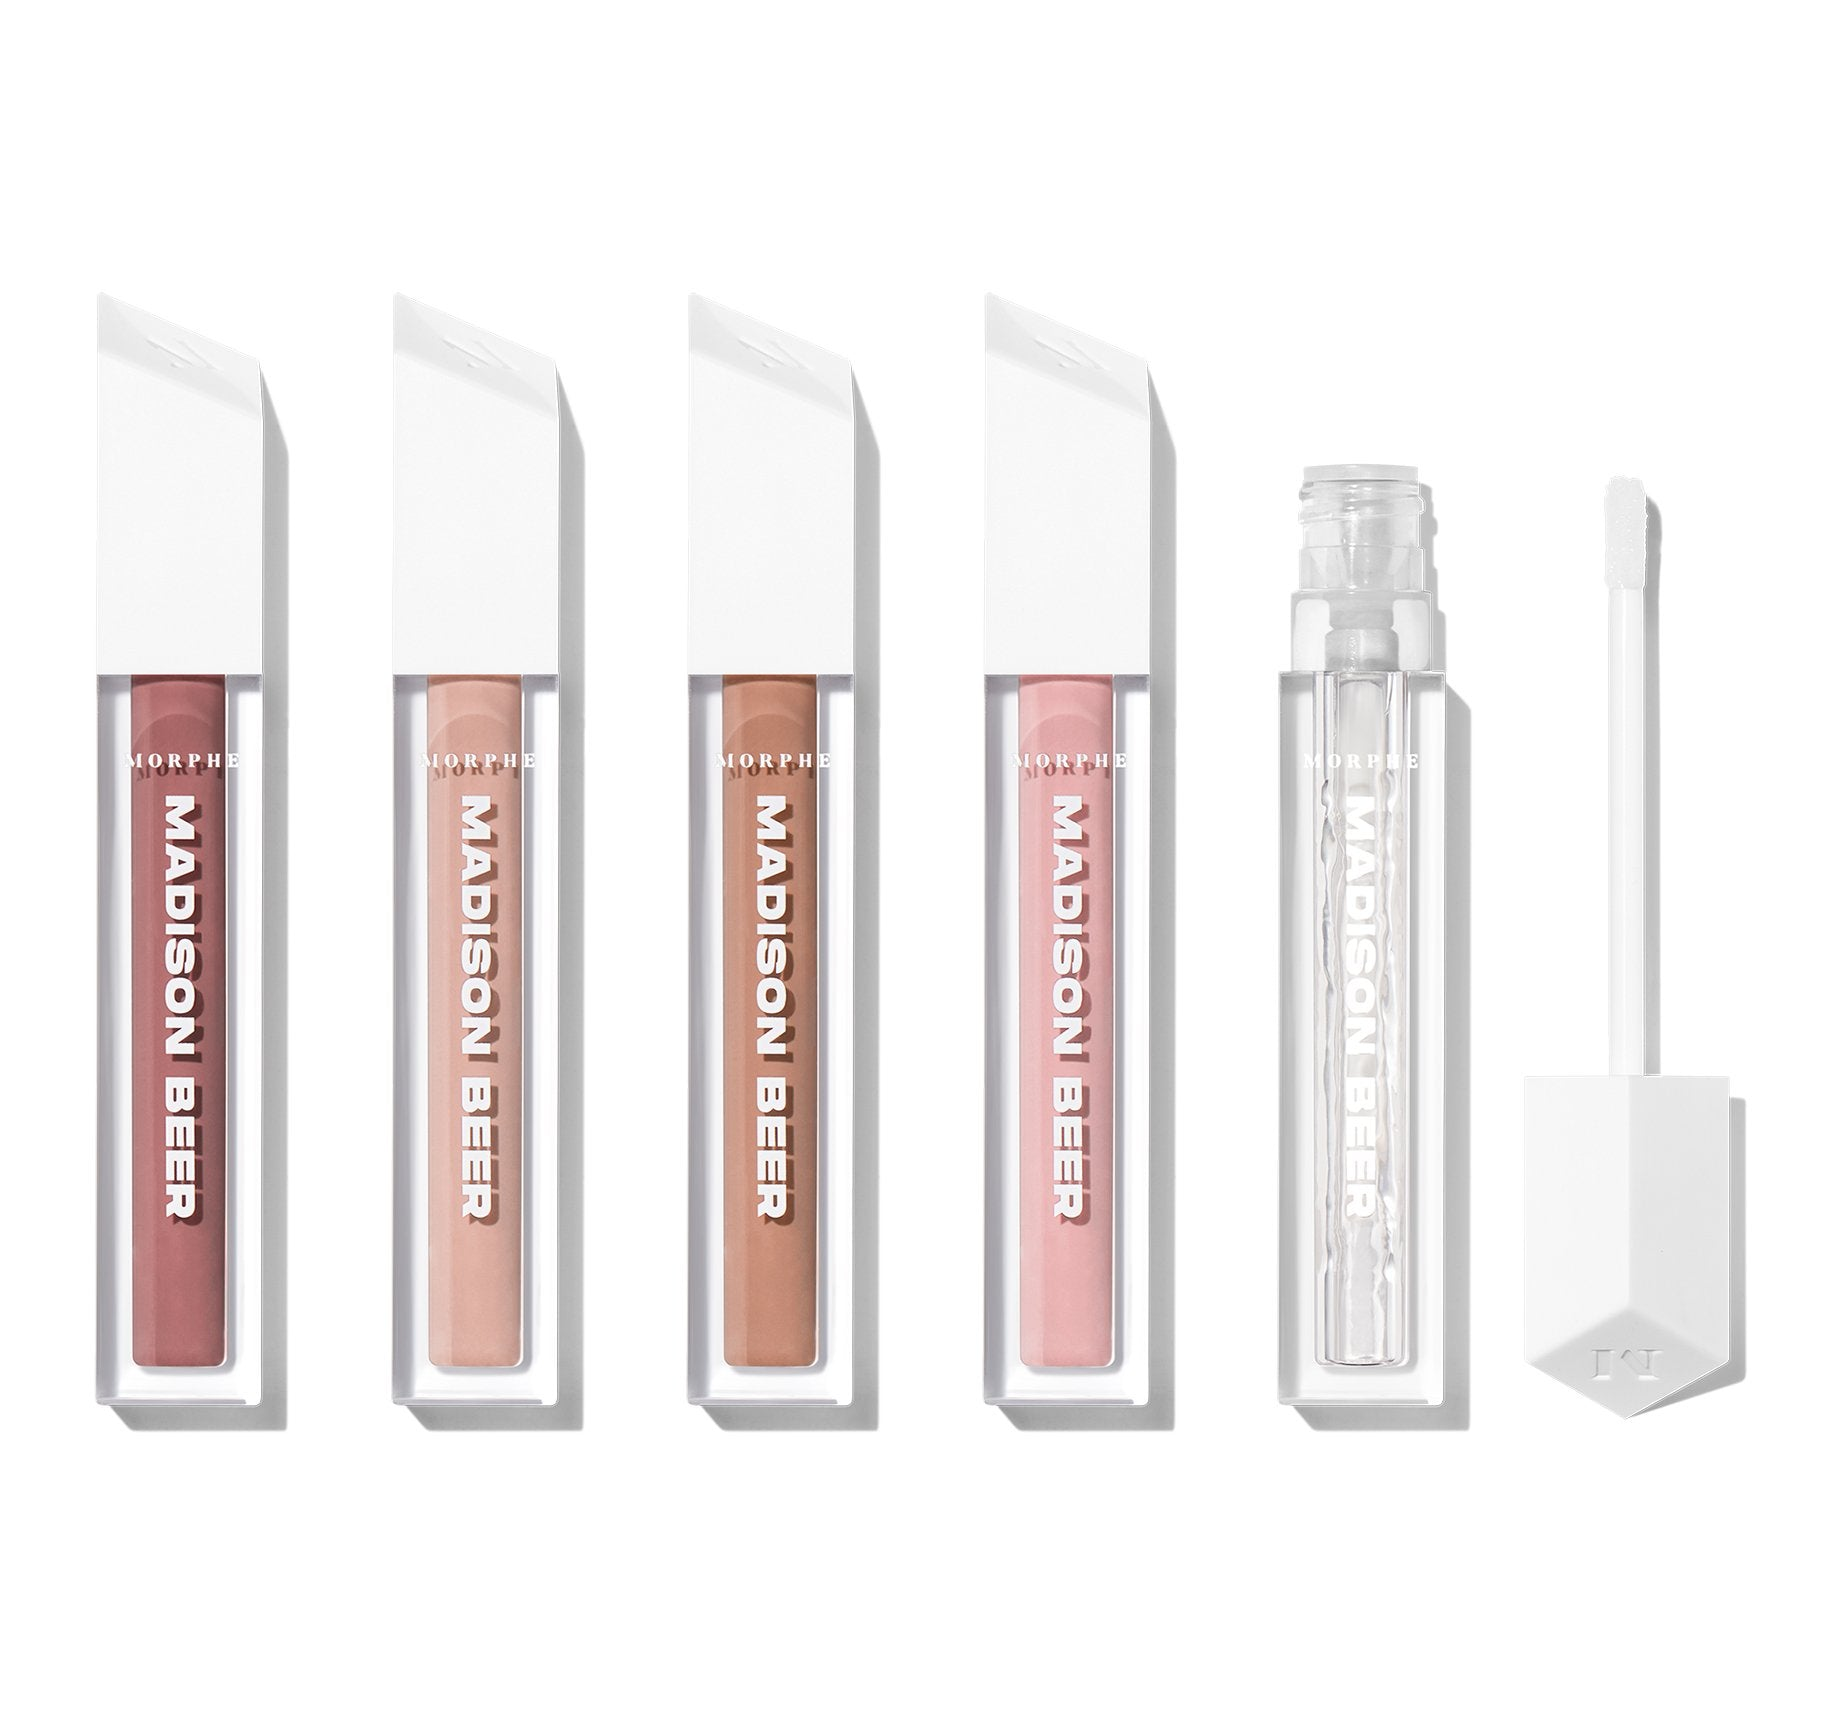 CHANNEL SURFING LIP GLOSS COLLECTION, view larger image